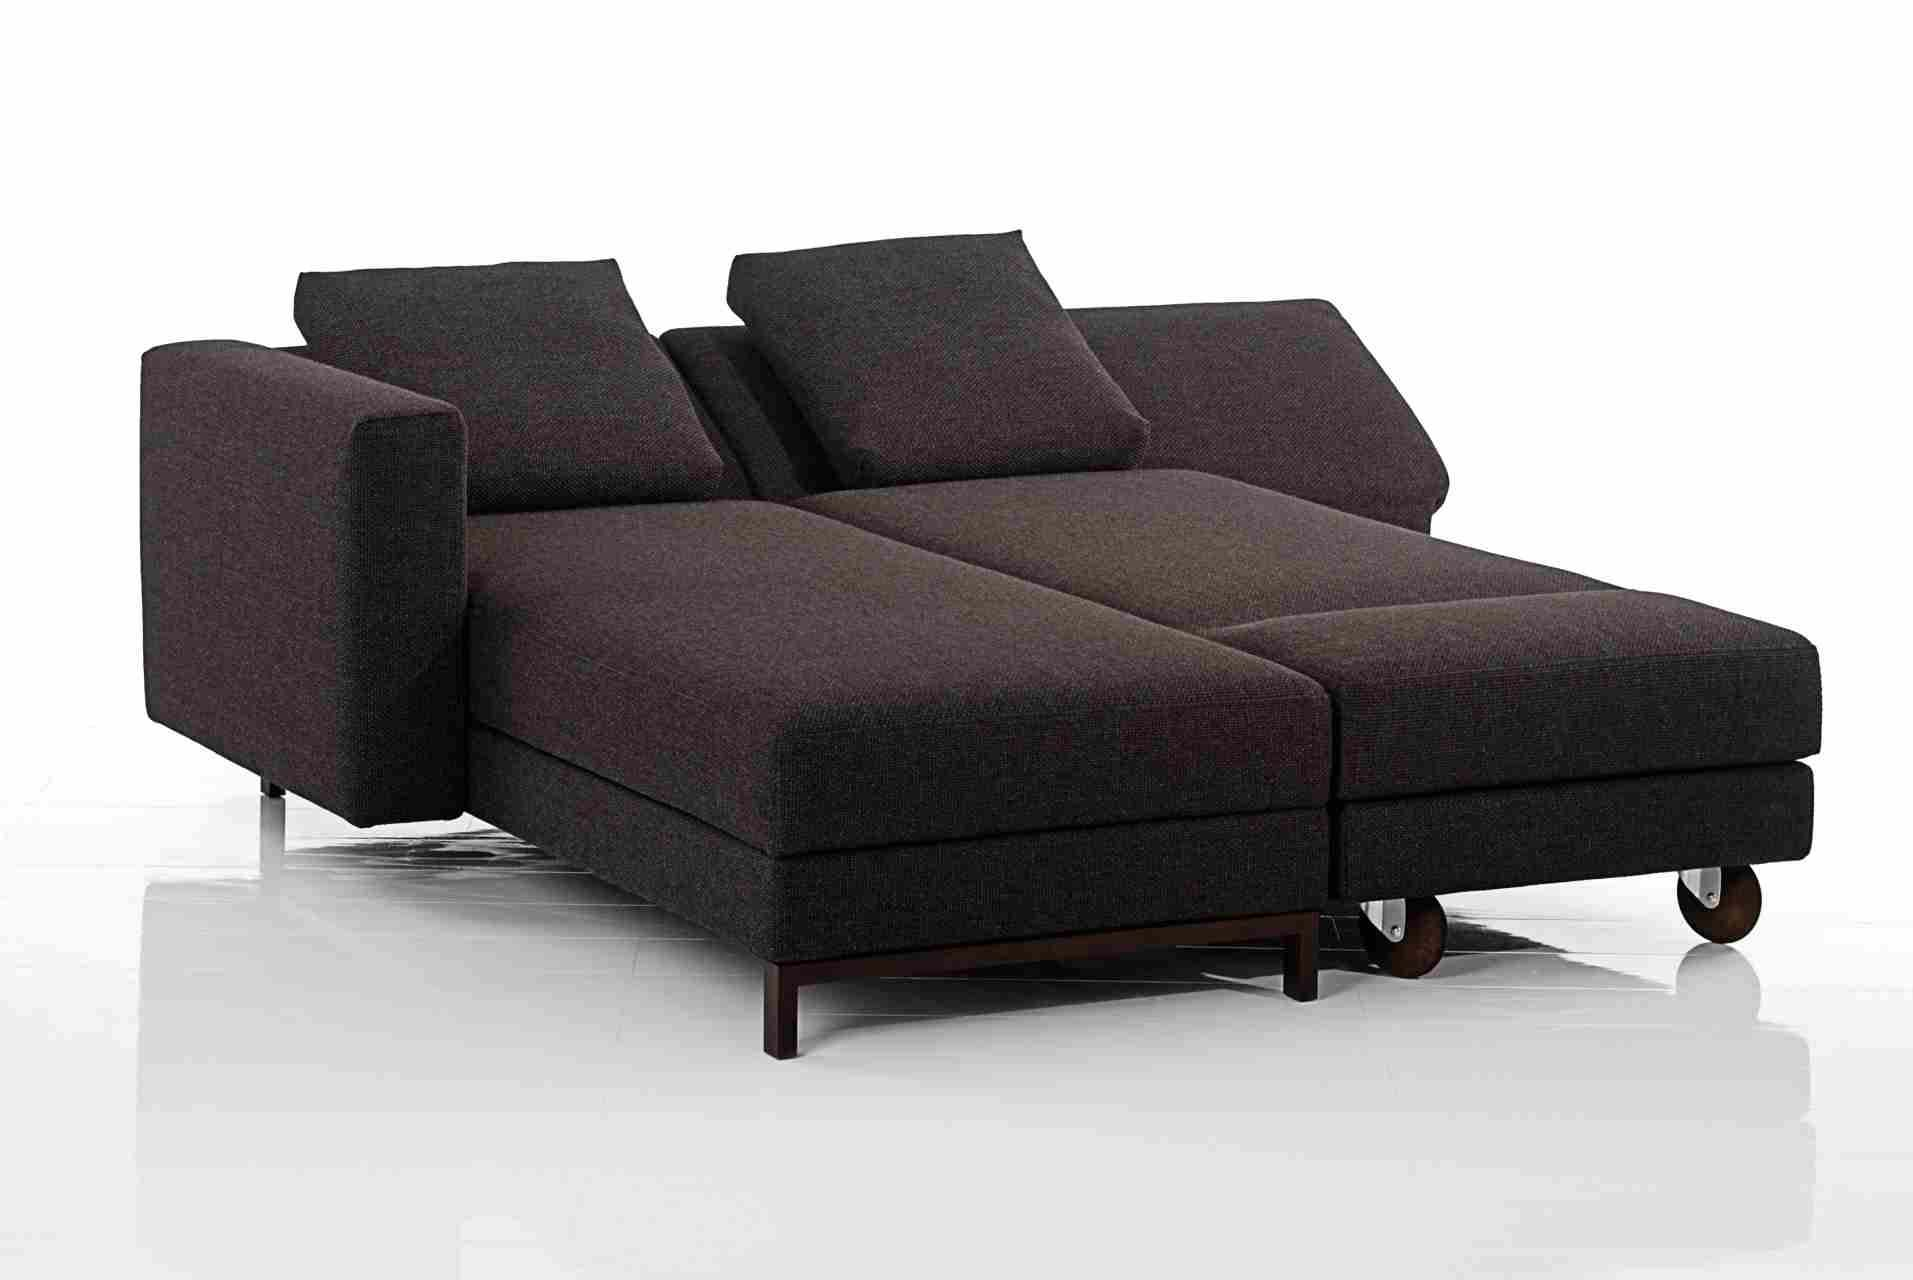 Sofa Holzfüße Sofa Four Two Biomöbel Genske